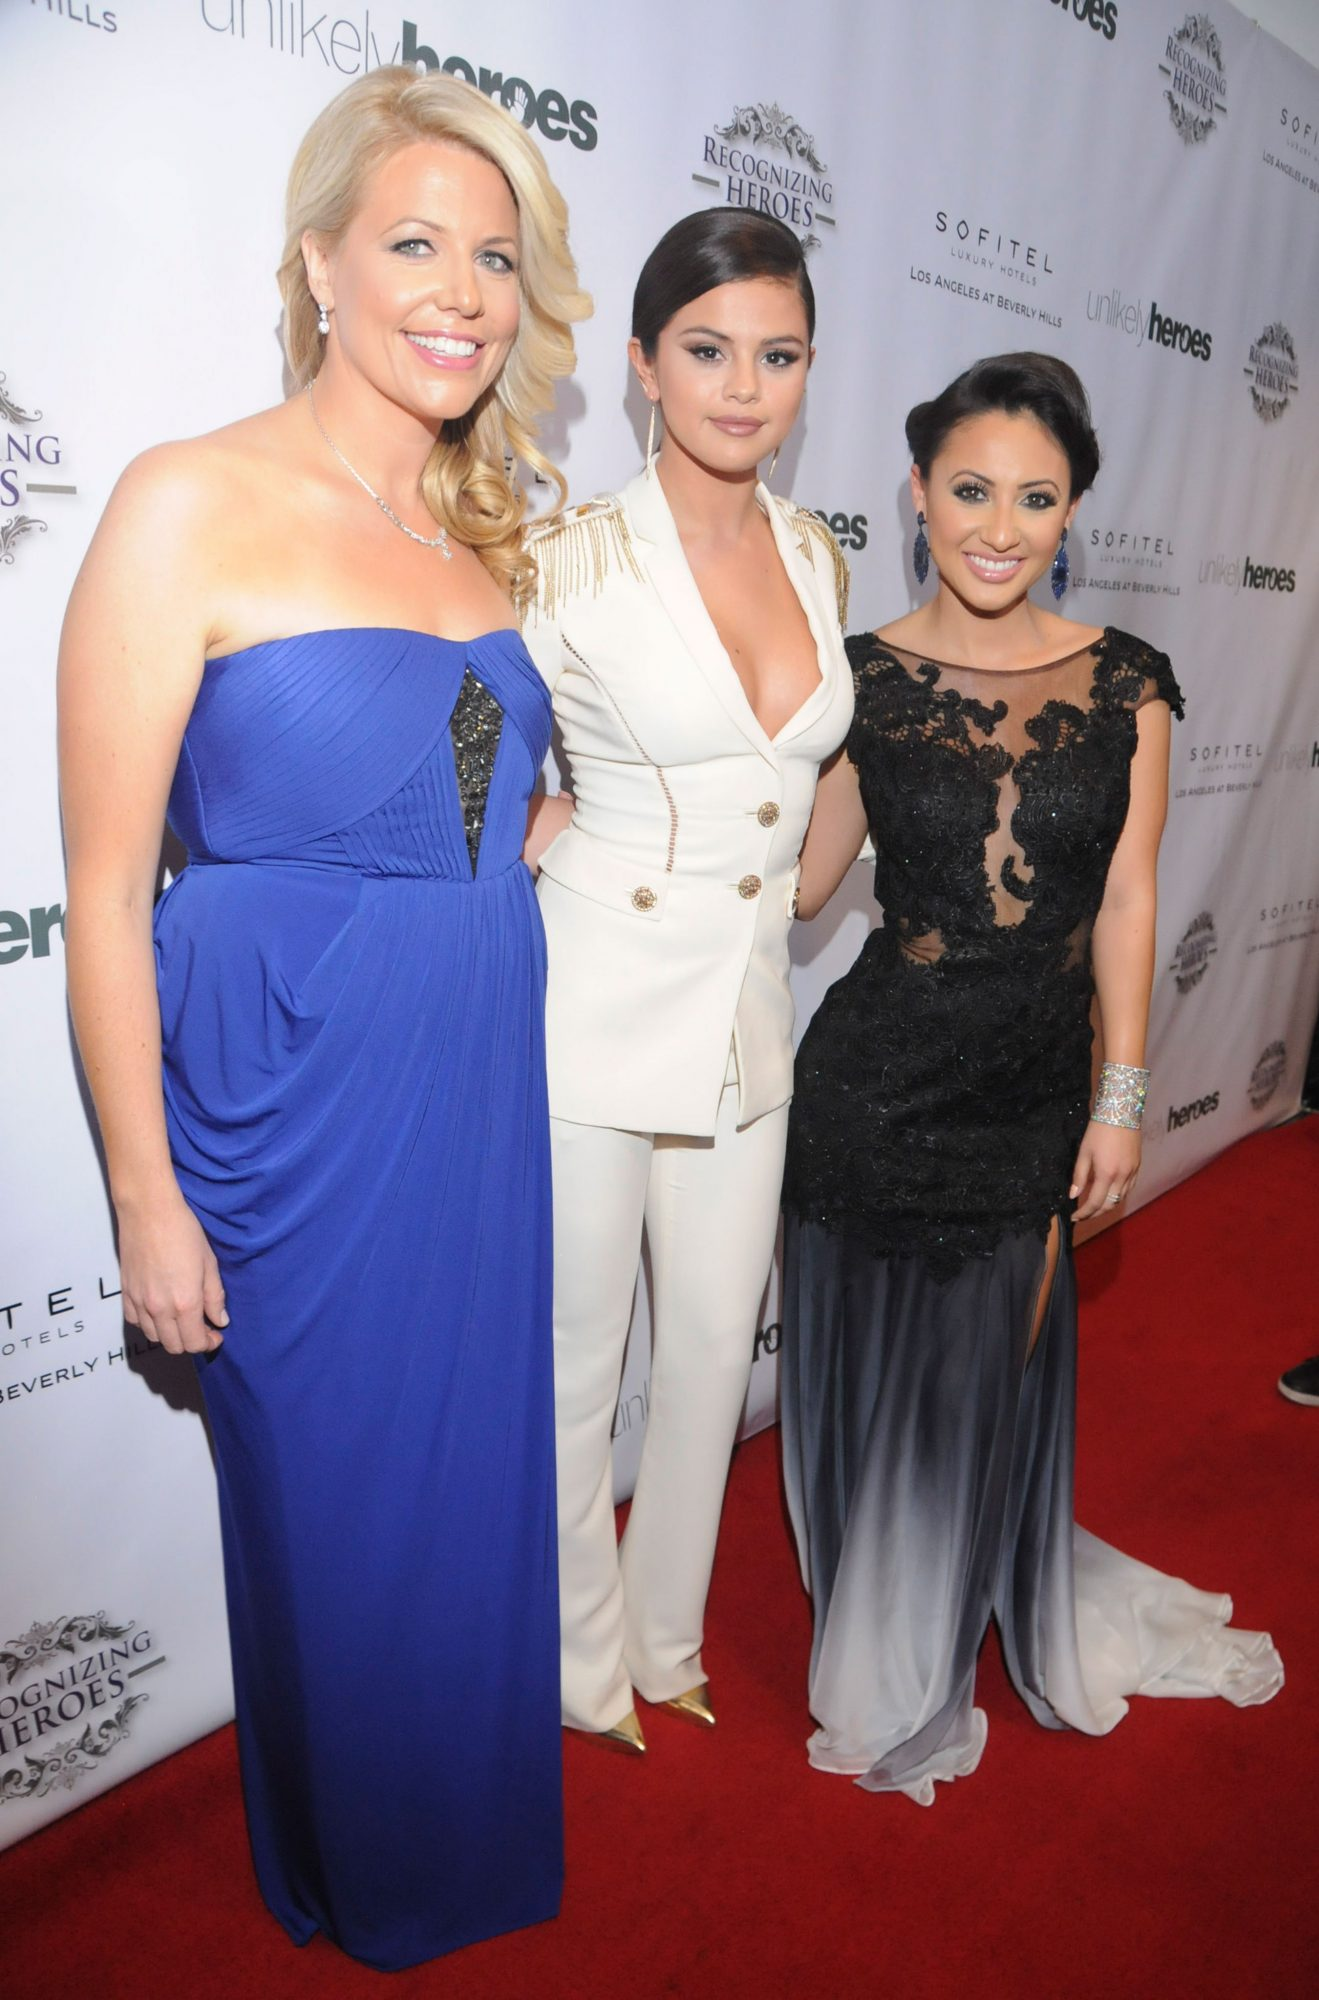 Unlikely Heroes' 3rd Annual Awards Dinner And Gala